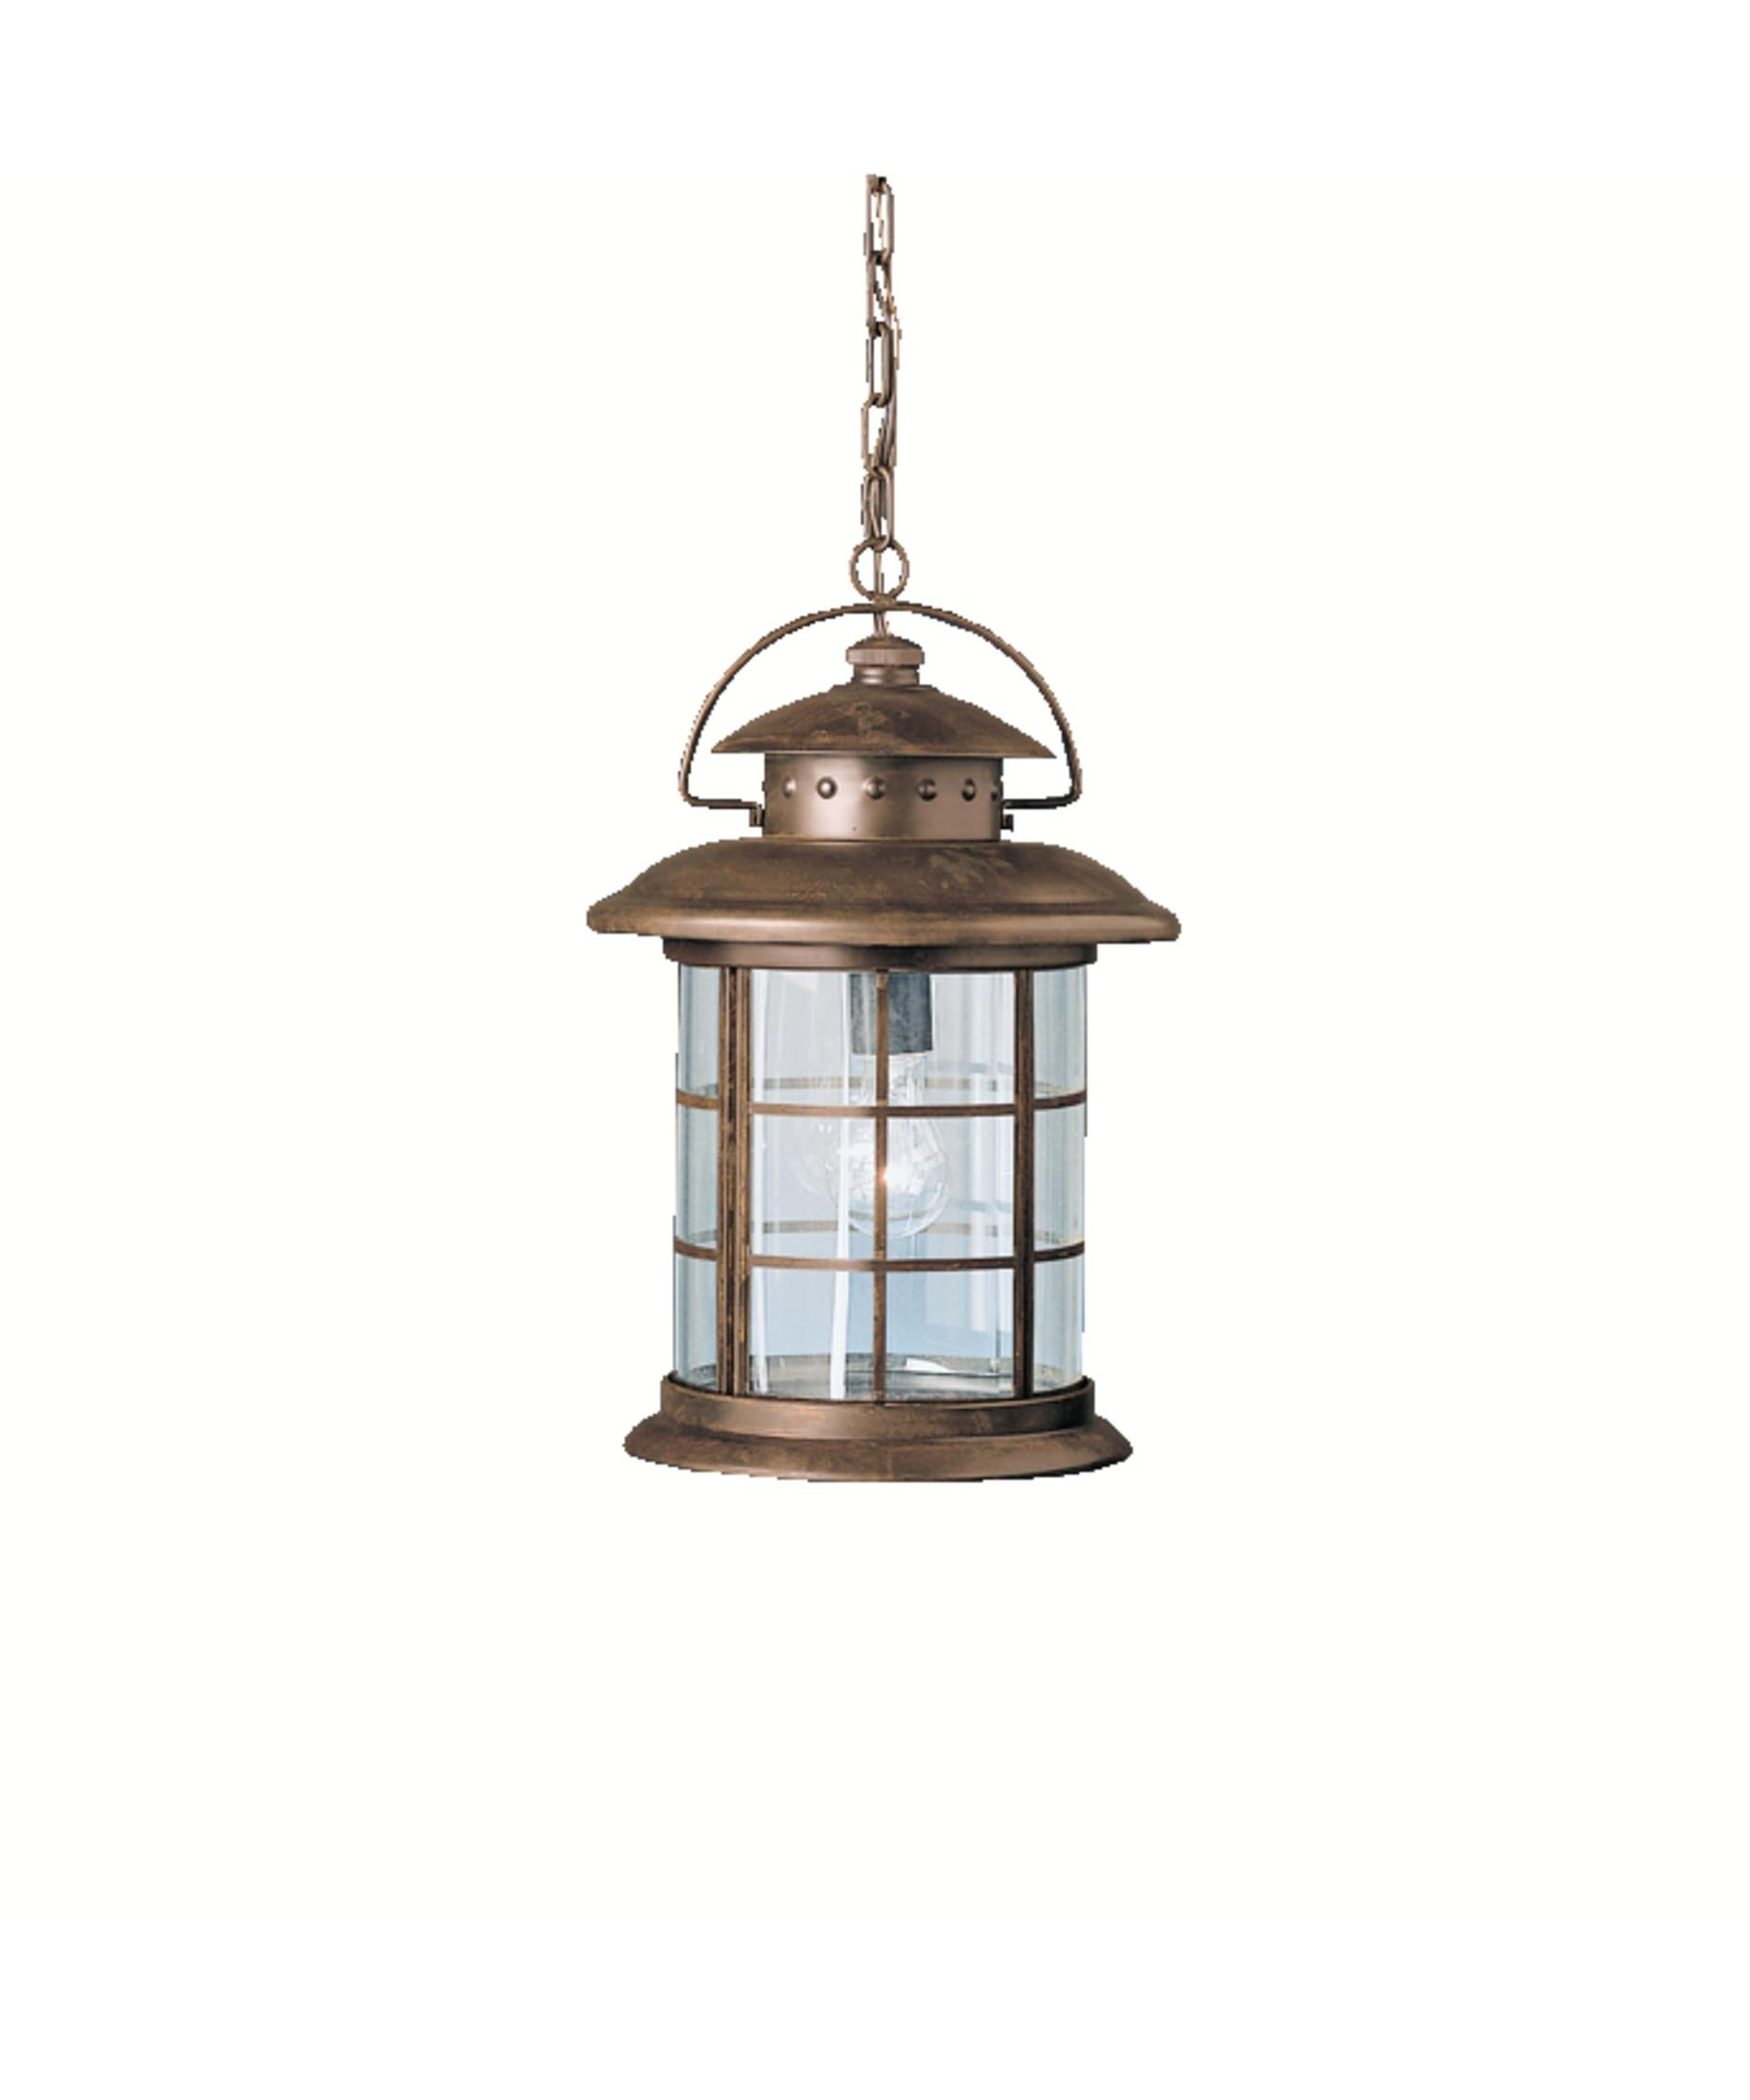 Well Known Kichler 9870 Rustic 11 Inch Wide 1 Light Outdoor Hanging Lantern For Outdoor Ceiling Pendant Lights (View 6 of 20)